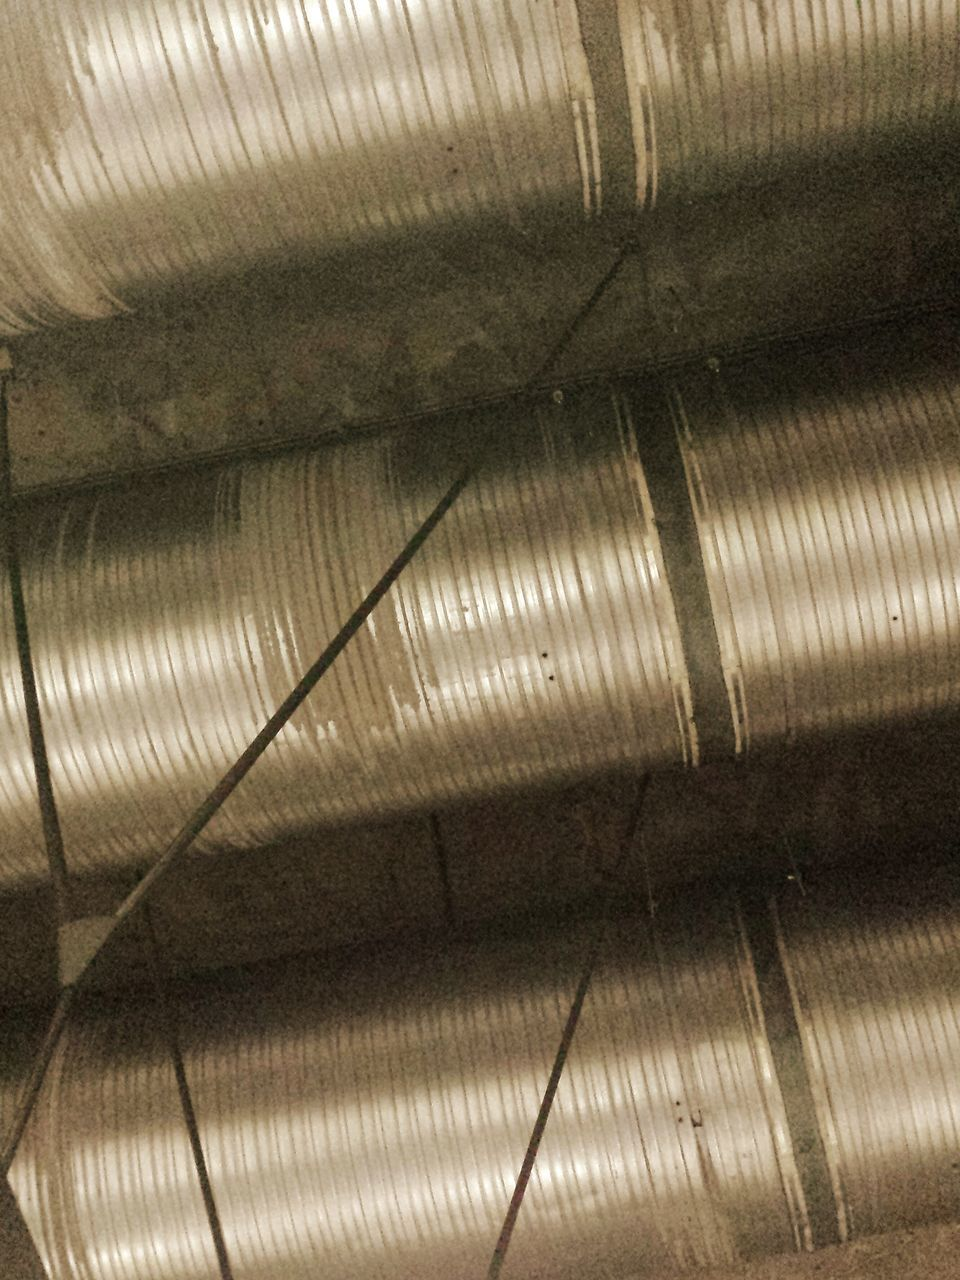 metal, silver colored, spool, textile industry, industry, machinery, indoors, manufacturing equipment, factory, silver - metal, steel, technology, no people, close-up, aluminum, day